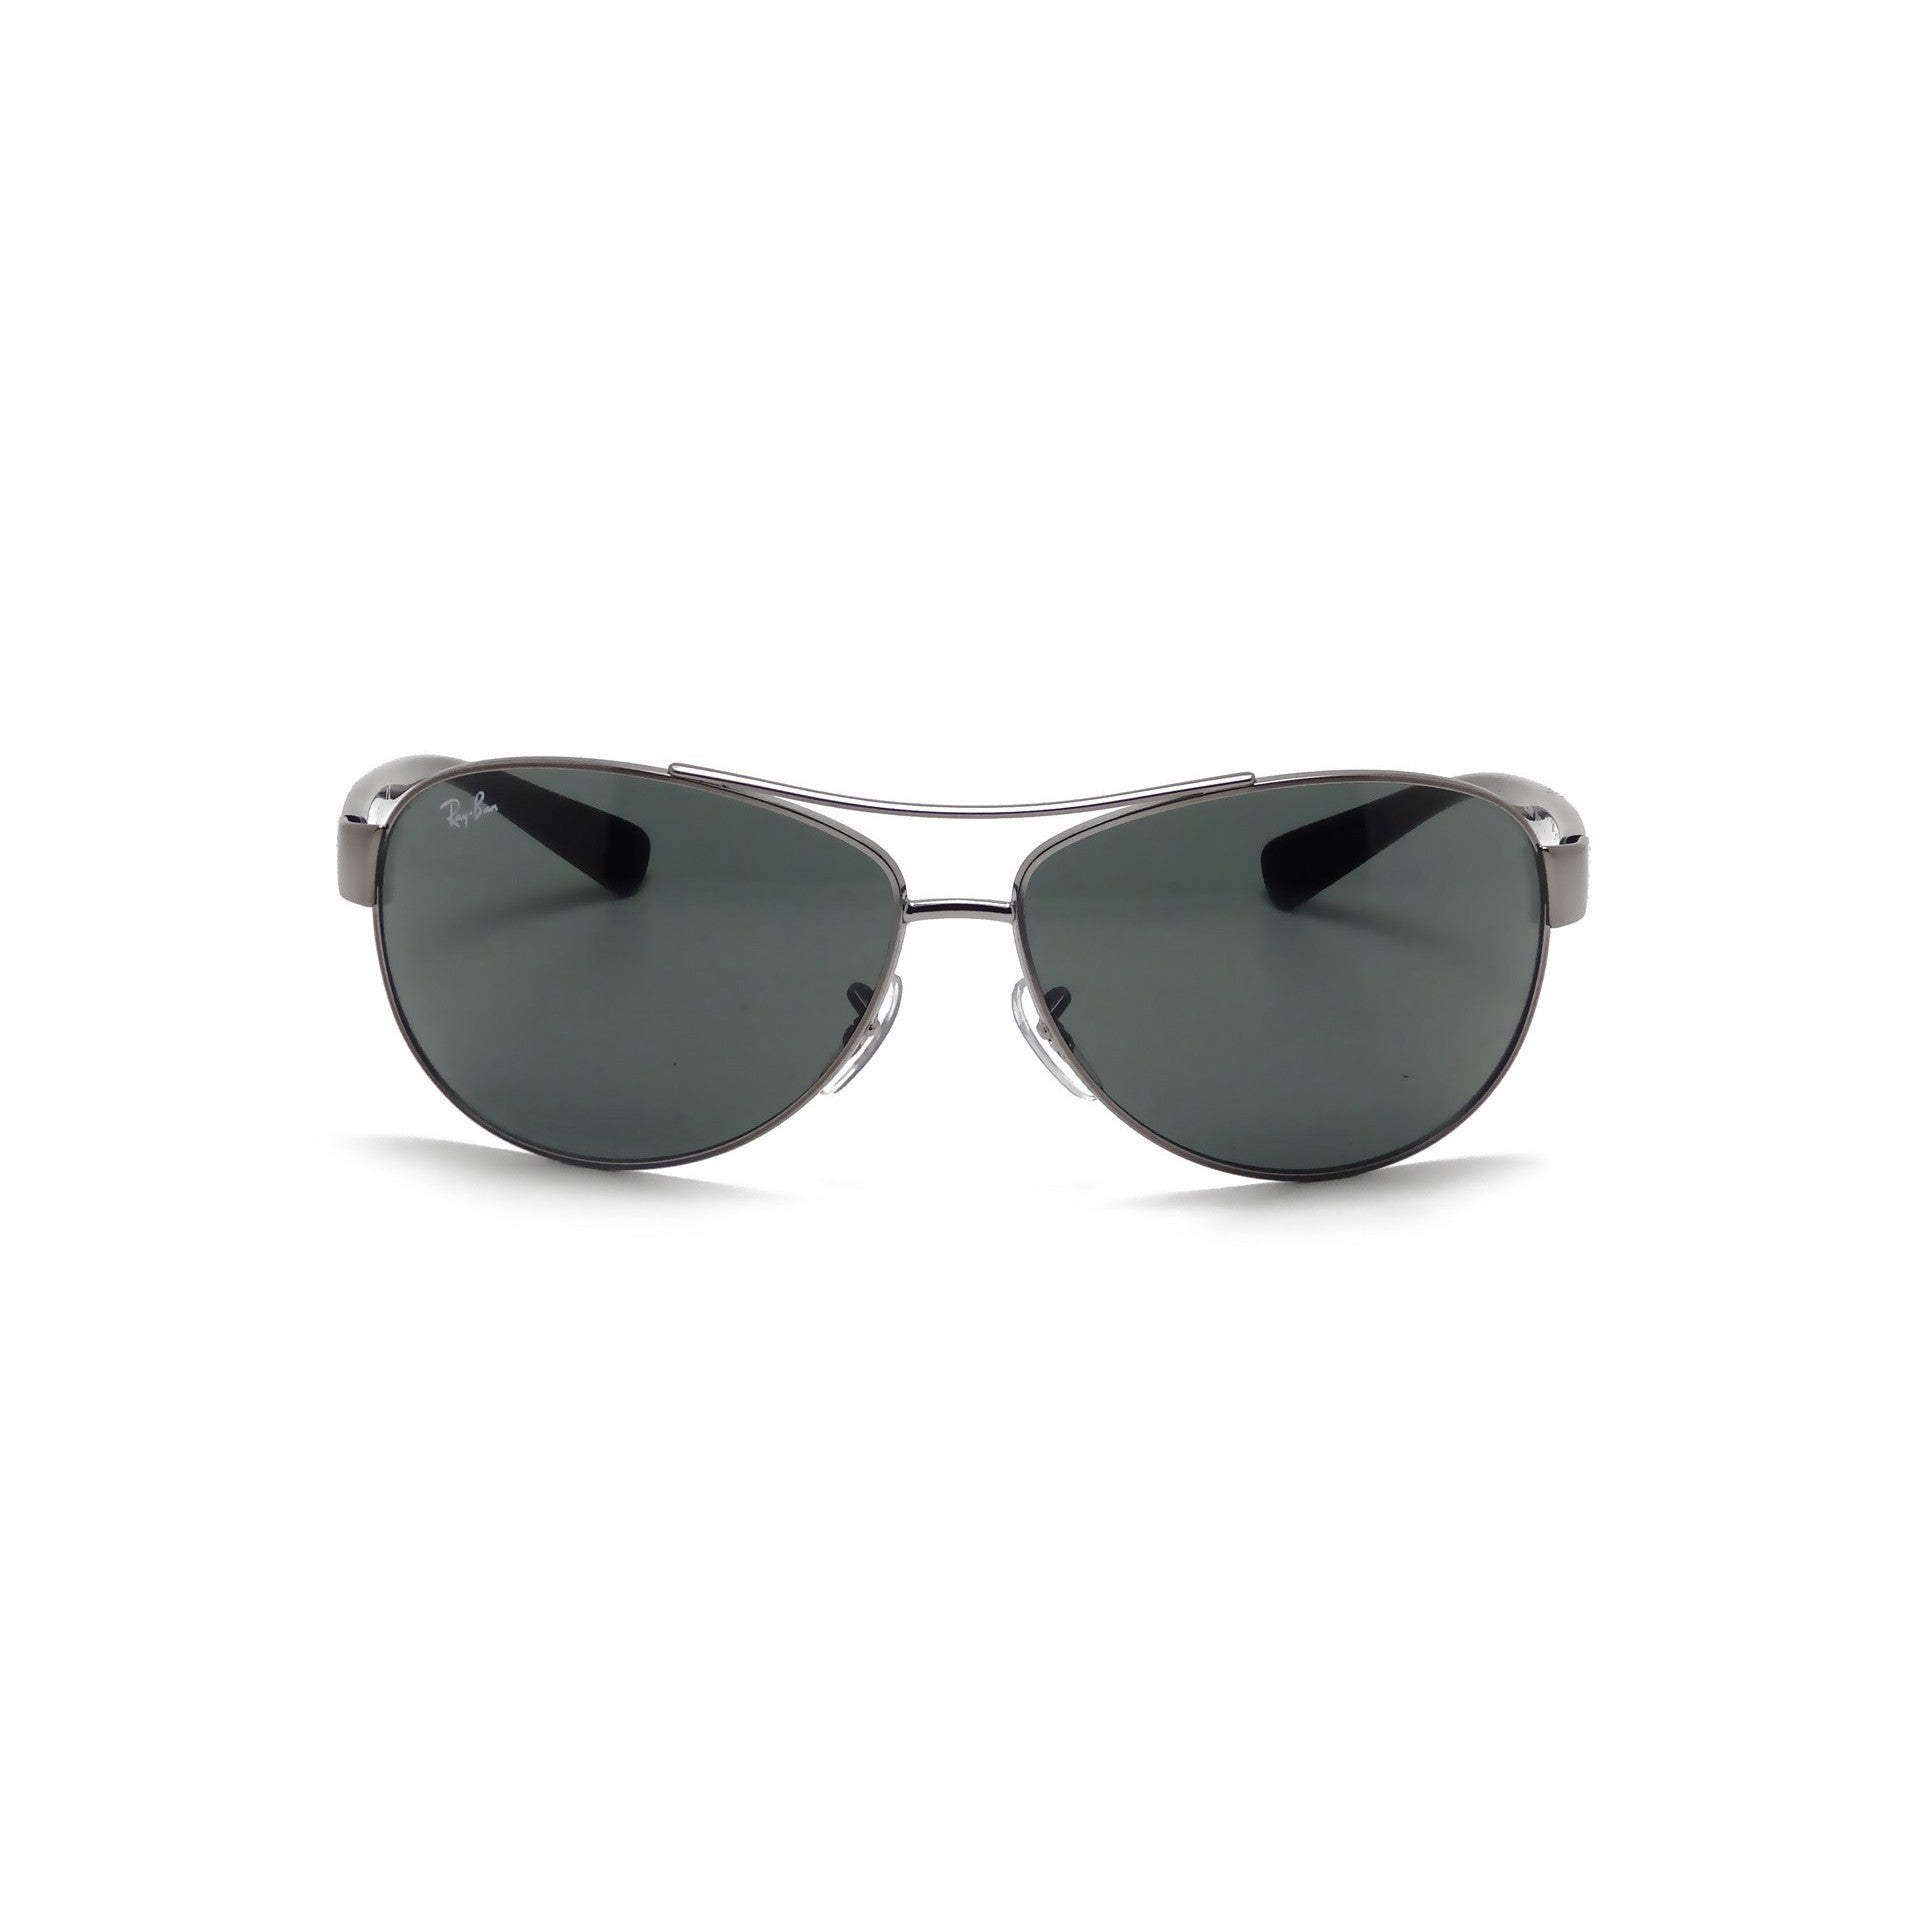 d220dc10ea Shop Ray Ban RB3386 004 71 Gunmetal Black Frame Green Classic 63mm Lens  Sunglasses - Free Shipping Today - Overstock - 11863067